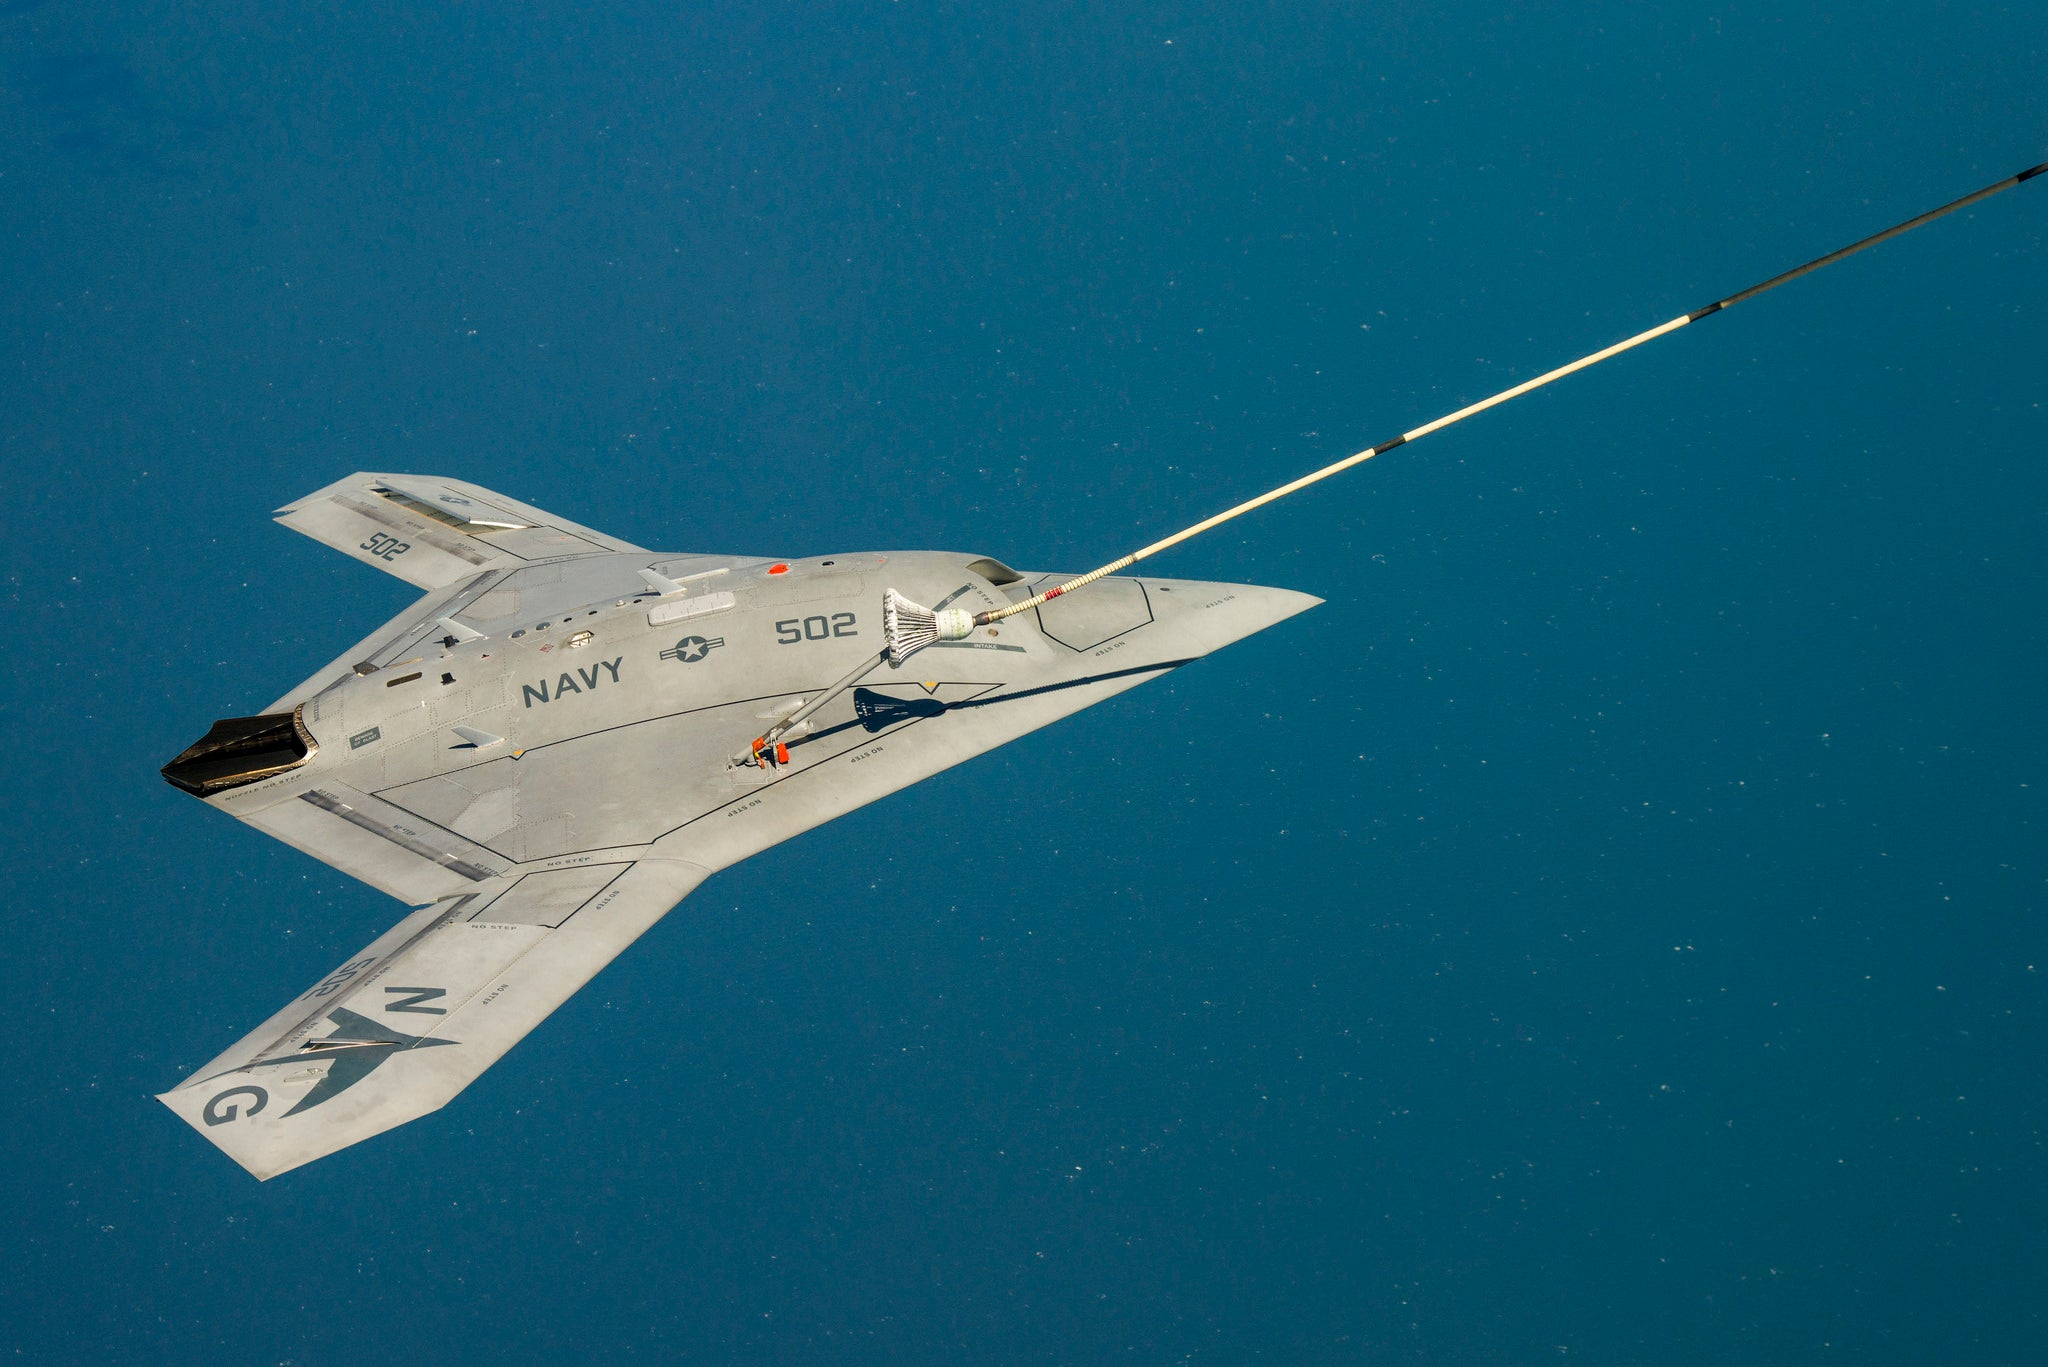 Awesome video shows unmanned X-47B drone refuelling in the air